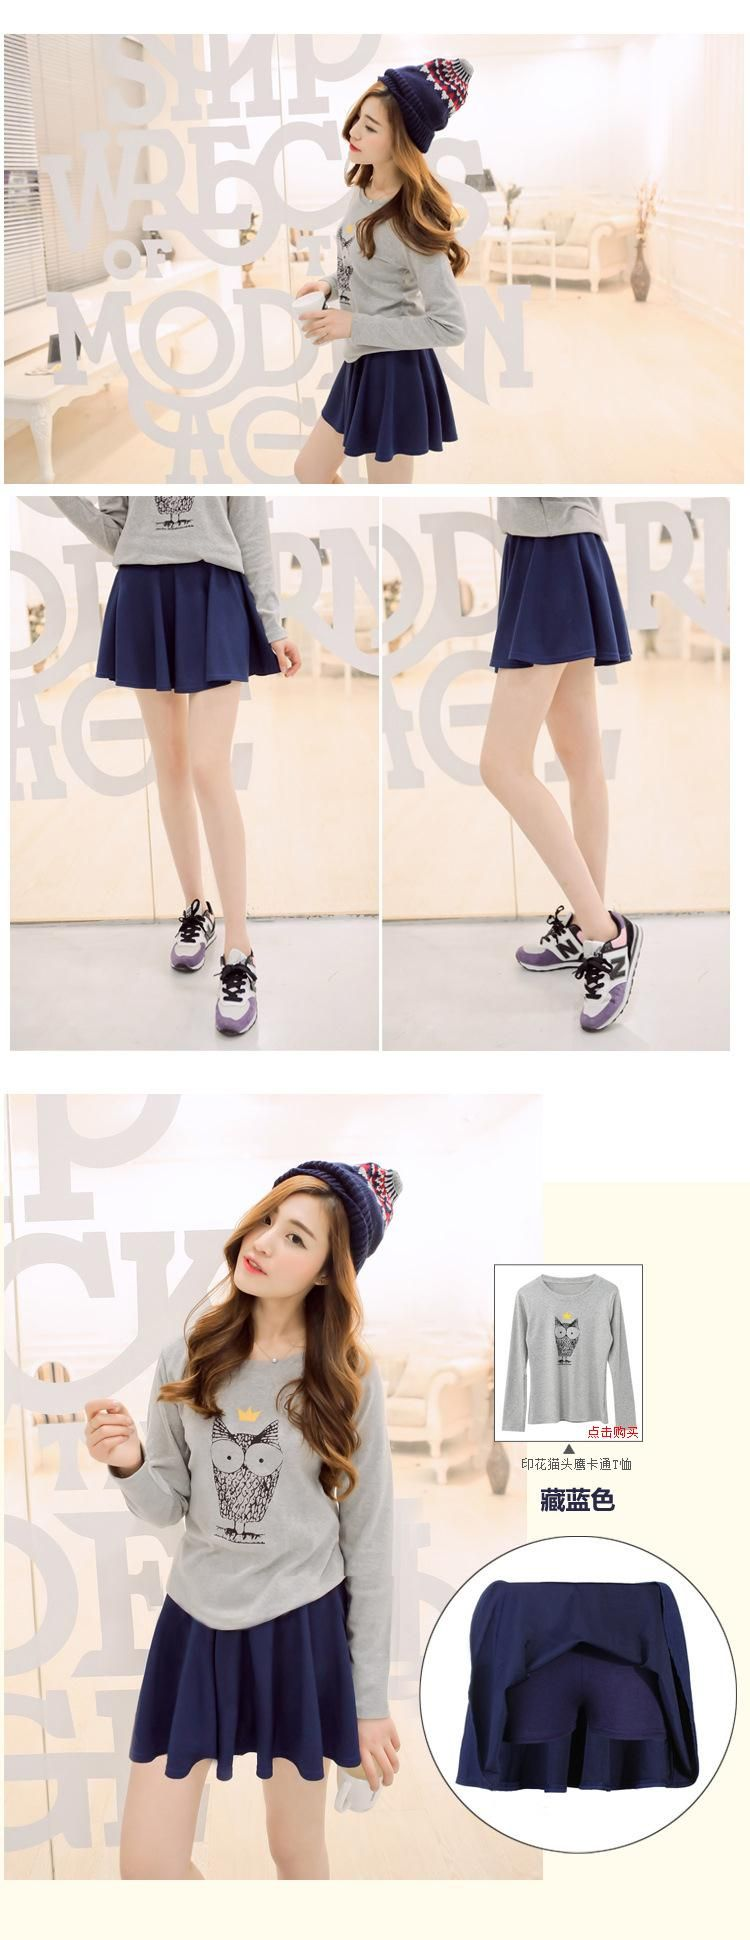 48704955a2 Summer Style Korean Version Skirts Safty Mini Skirt Women's Spring and  Summer Solid High Waist Pleated All Match Short Skirt